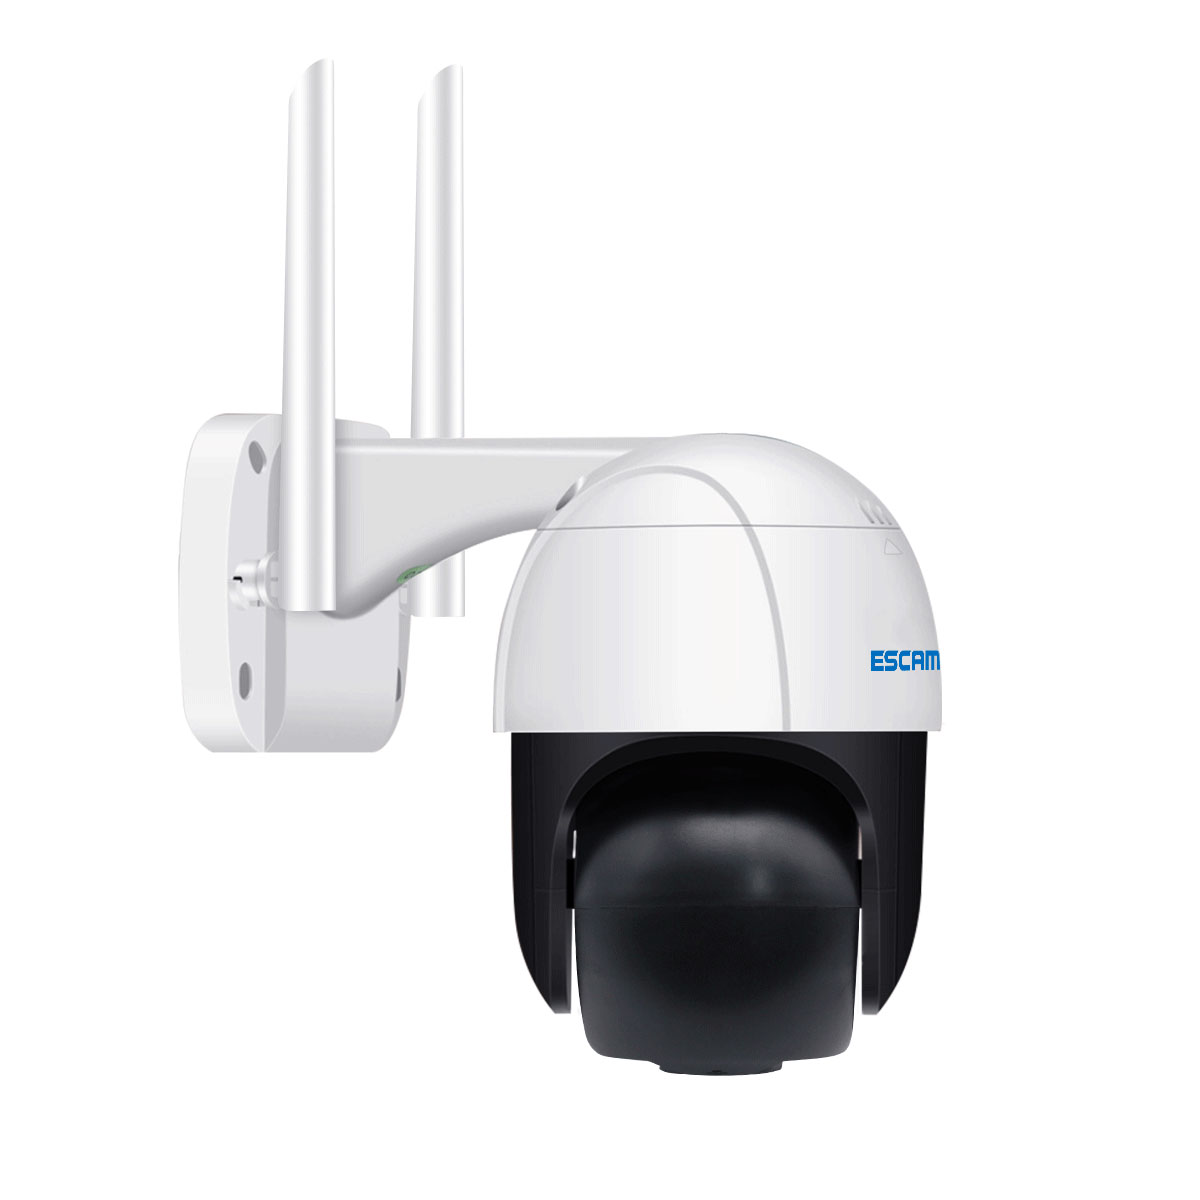 ESCAM QF518 5MP Pan/Tilt AI Humanoid Detection Auto Tracking Cloud Storage Waterproof WiFi IP Camera with Two Way Audio Night Vision